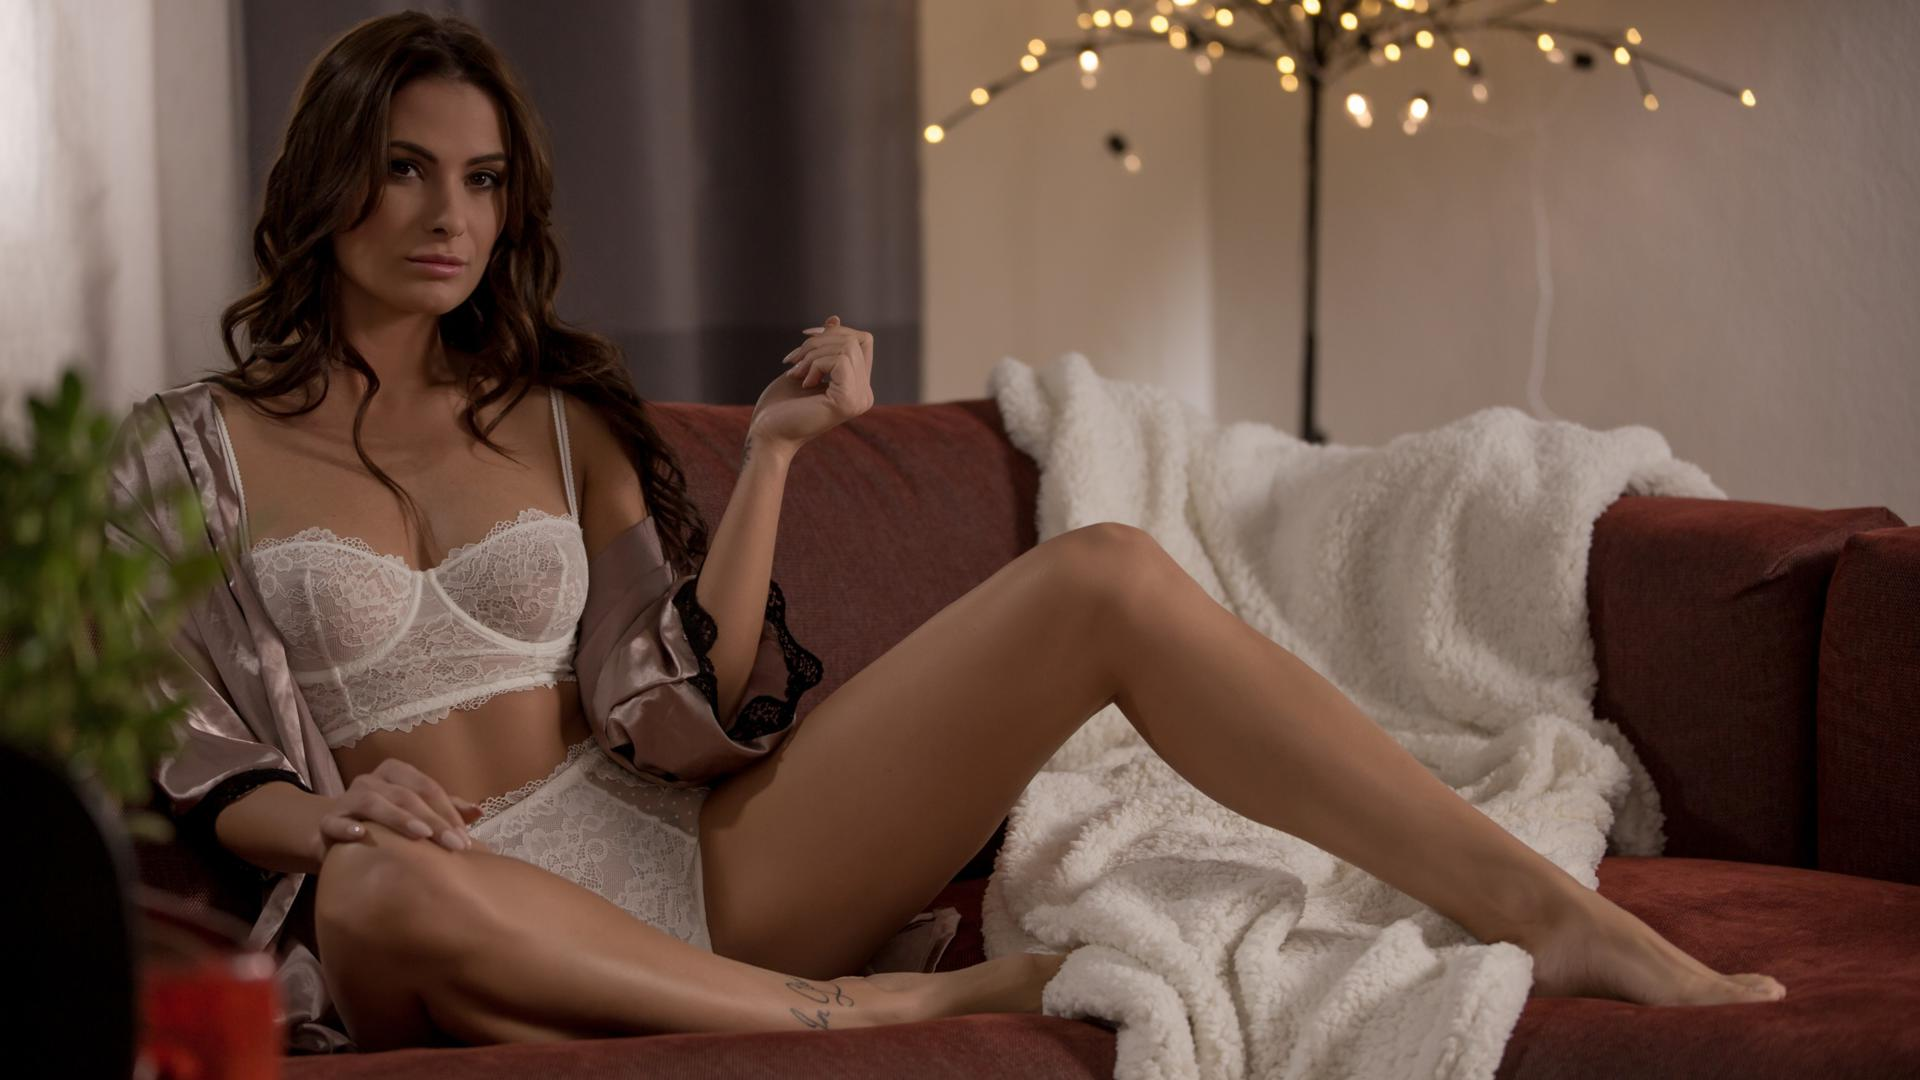 Download photo 1920x1080, amelie, brunette, sexy girl